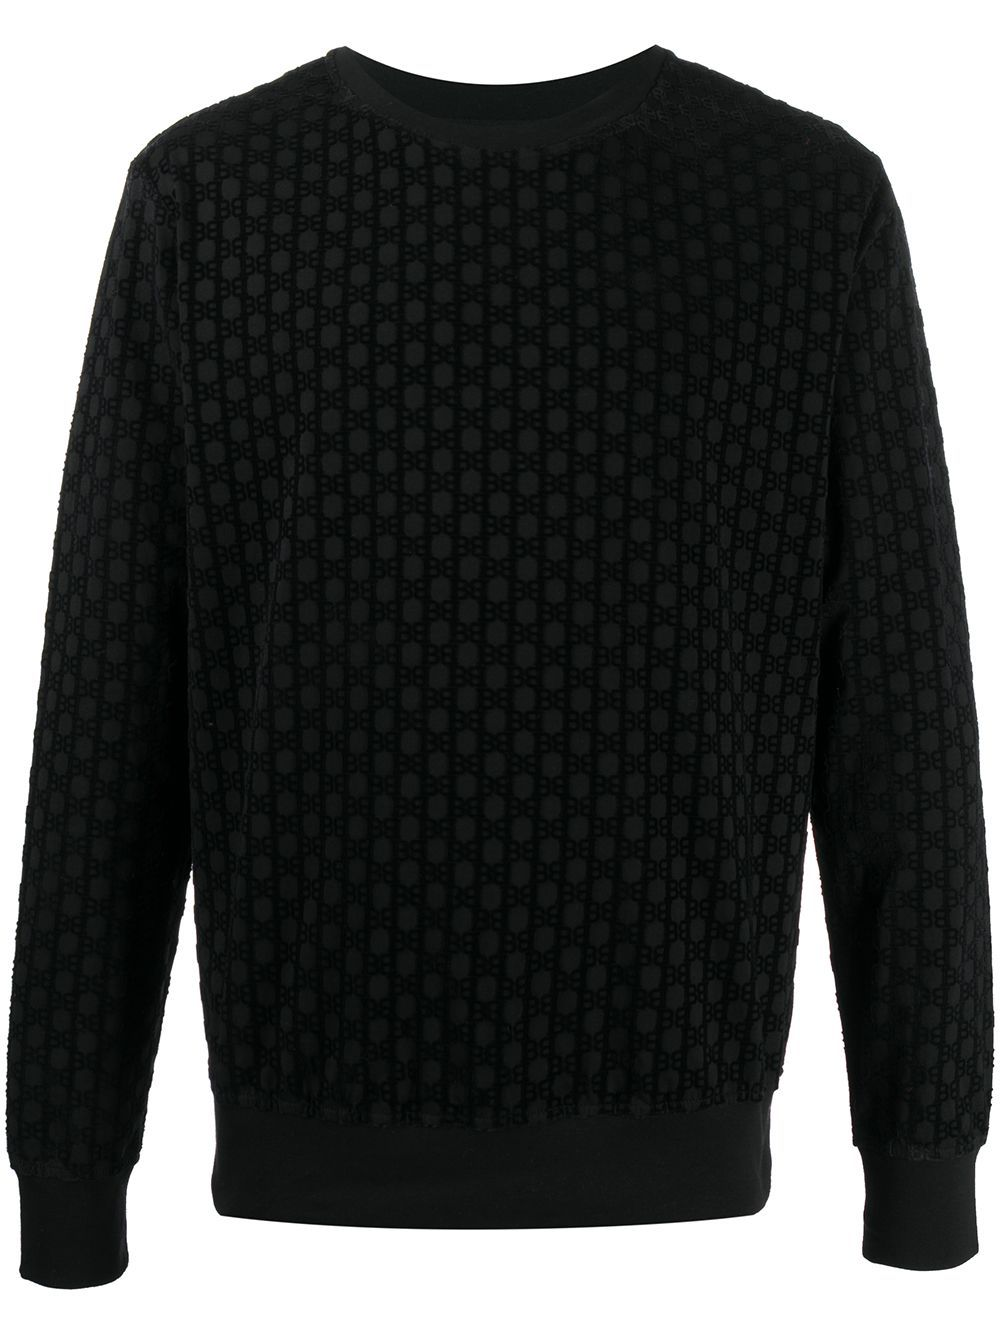 BALMAIN Resin Longsleeve T-Shirt Black - Maison De Fashion